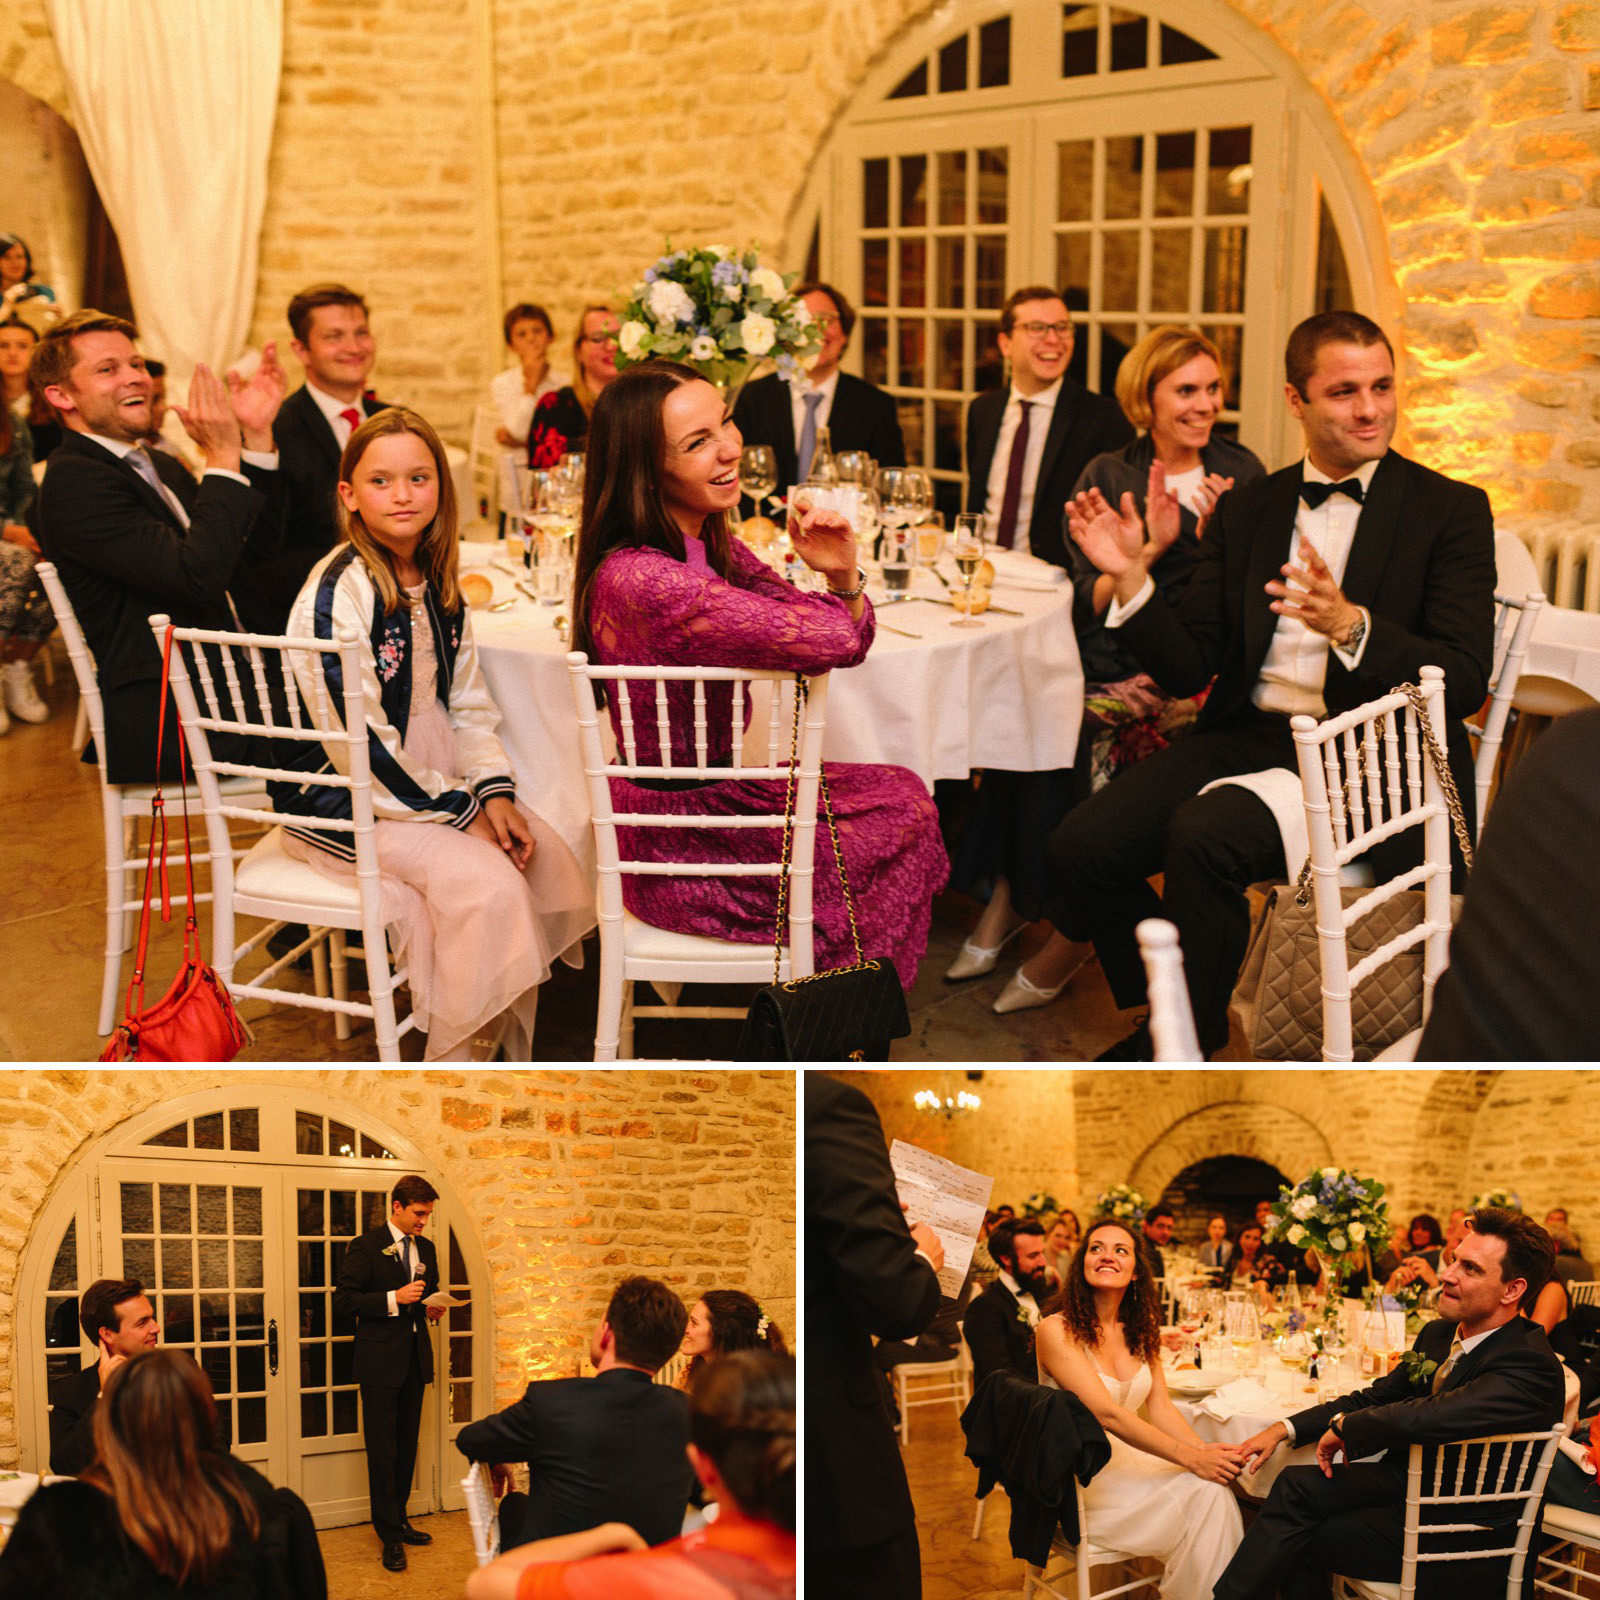 Santenay wedding